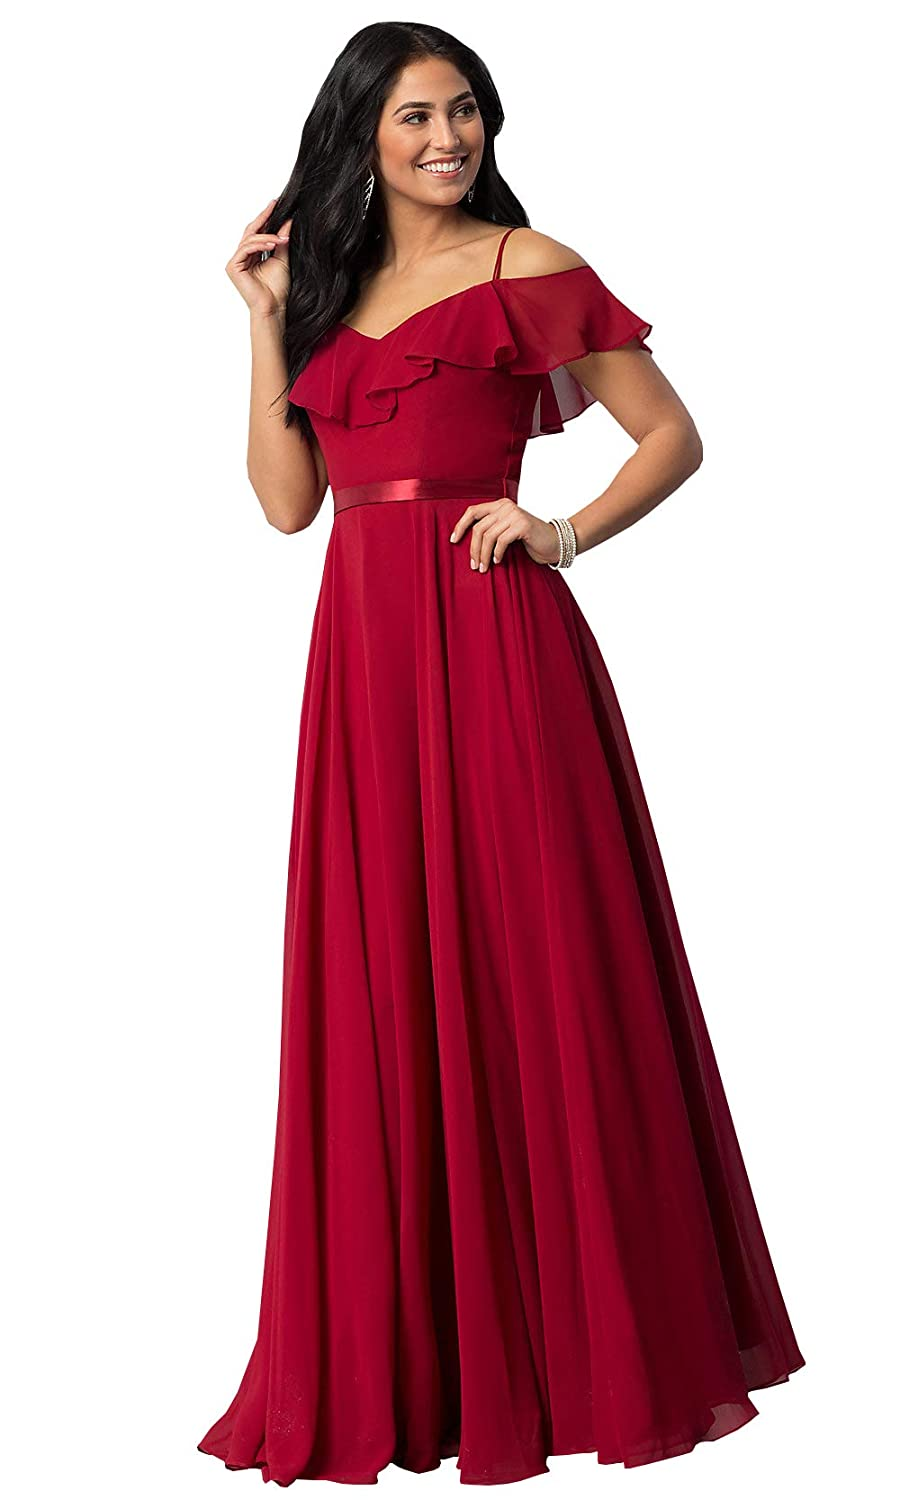 Now and Forever Womens Off The Shoulder Ruffled Chiffon Bridesmaid Dress Long Formal Prom Gown